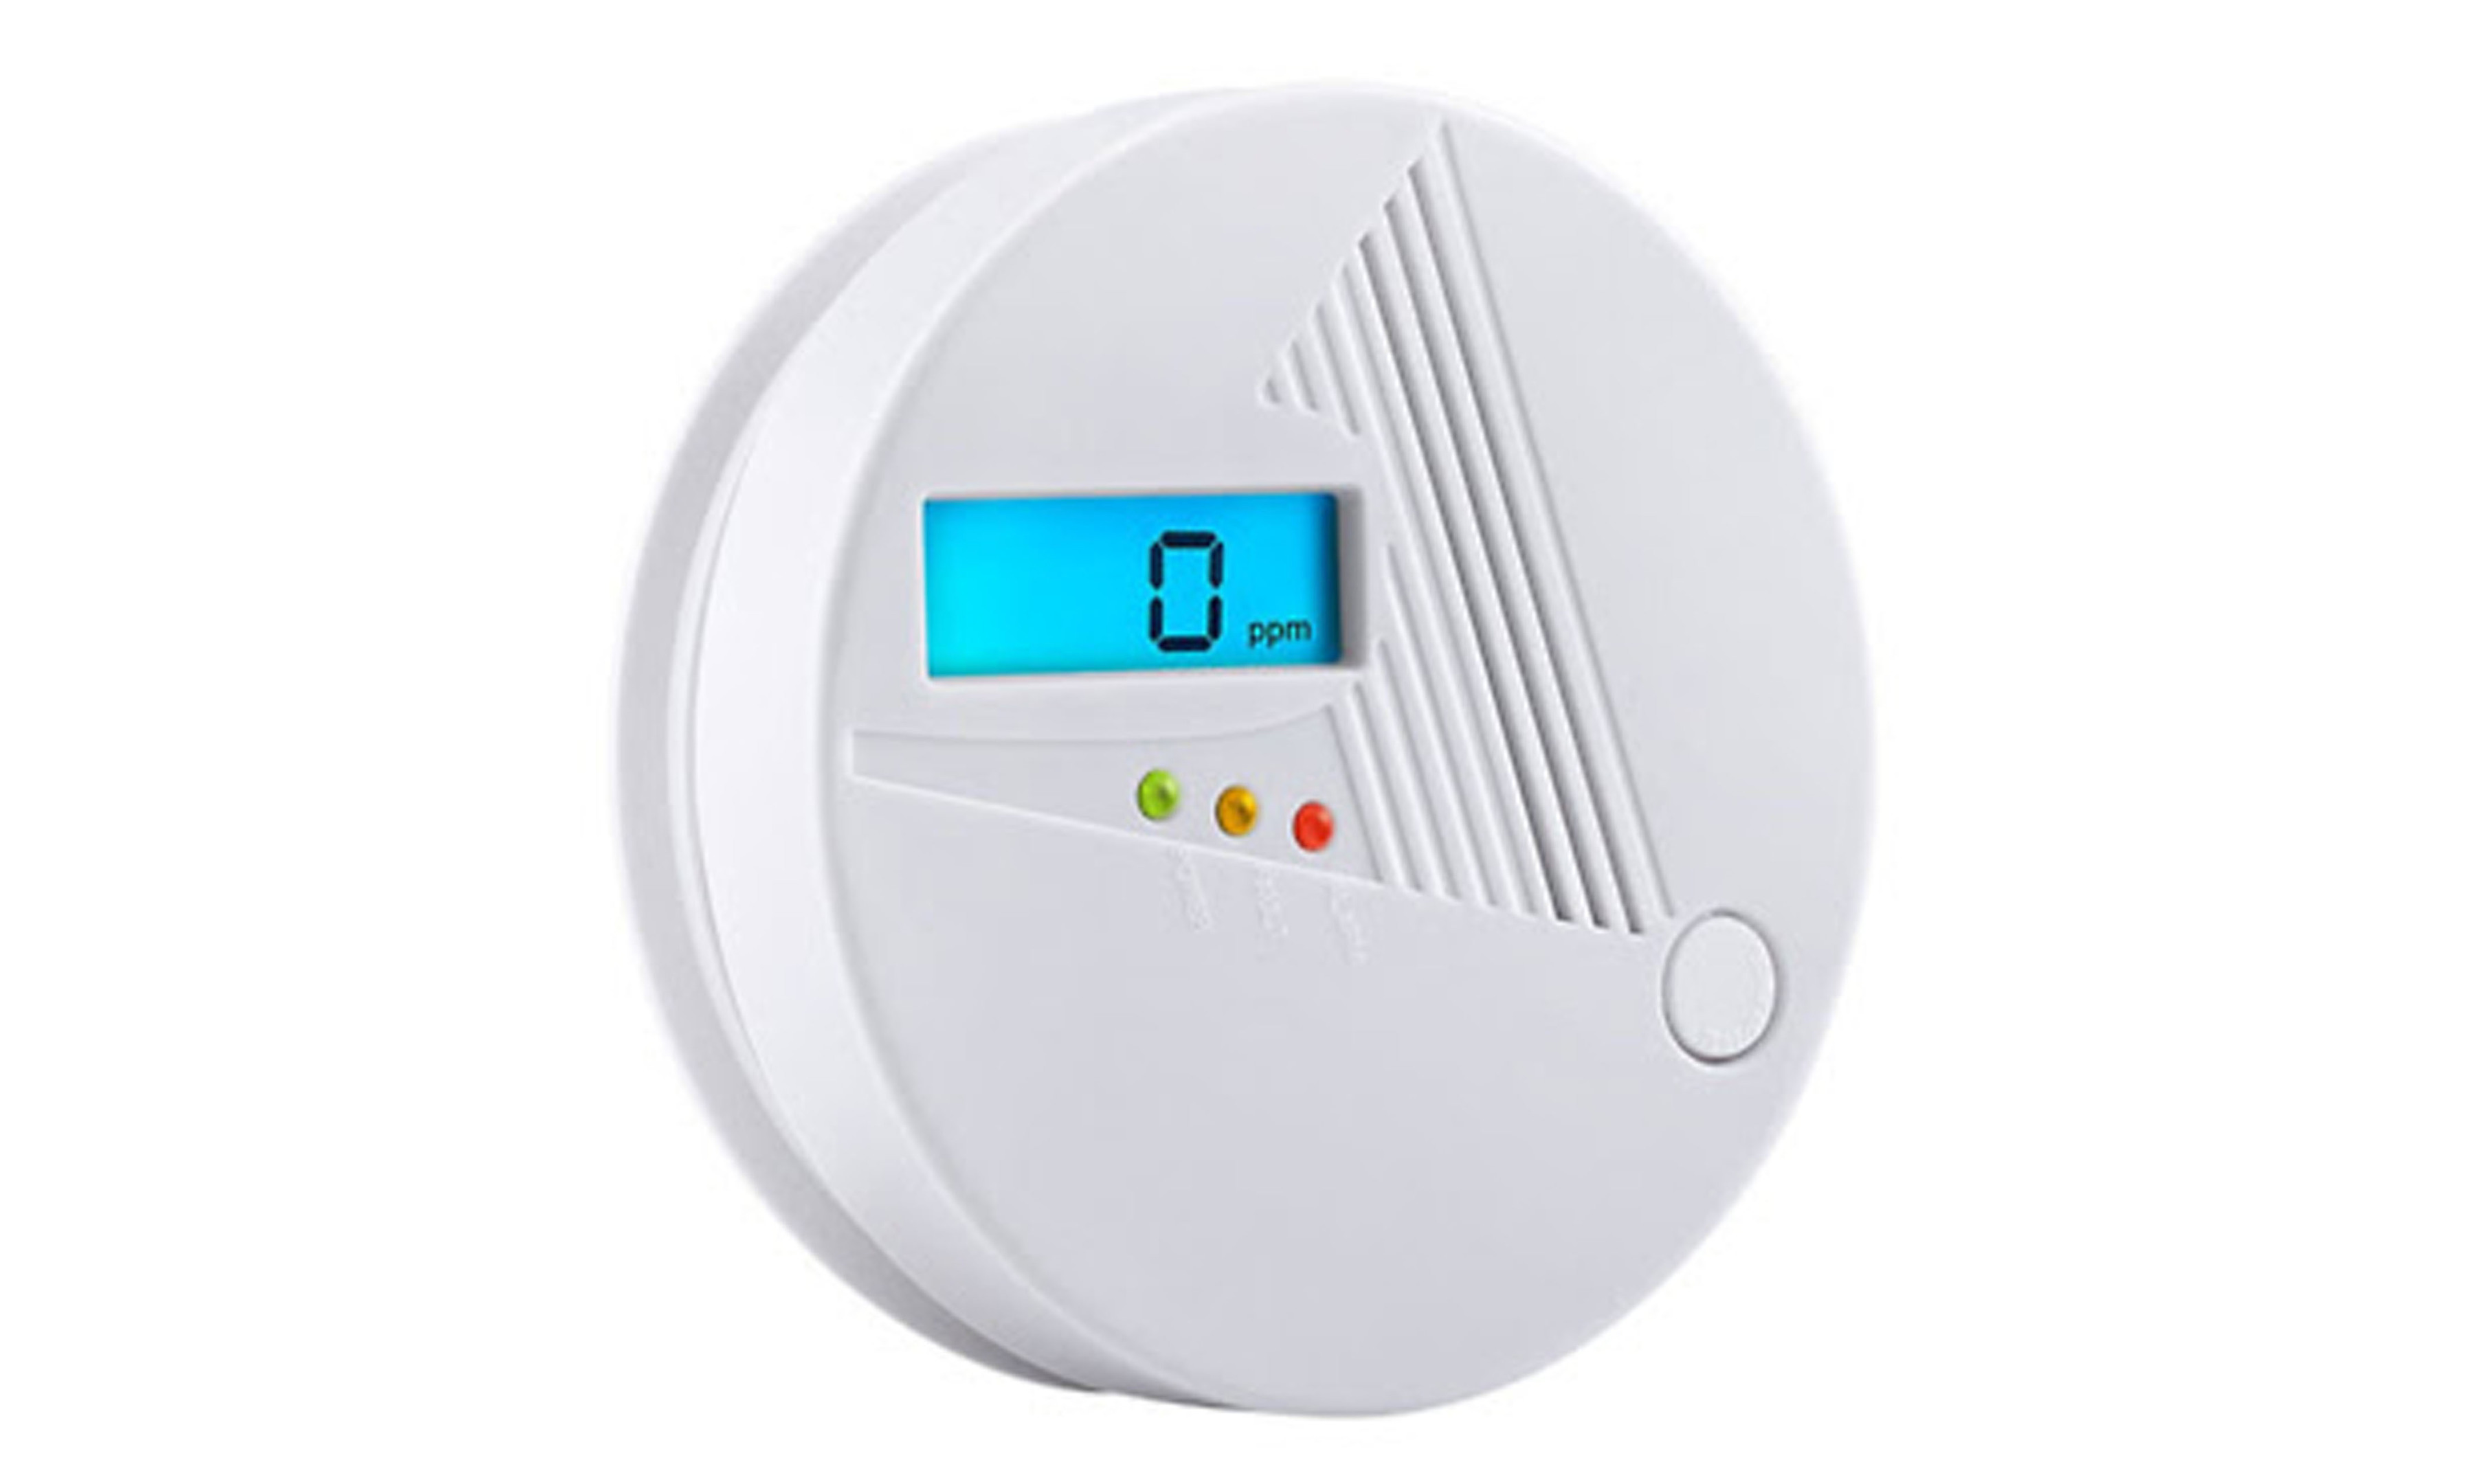 The Topolek GEHS007AW CO alarm costing £14.99 and listed as a bestseller on Amazon, which failed to detect carbon monoxide gas in more than 80% of the tests conducted by the watchdog (Which?/PA Wire)